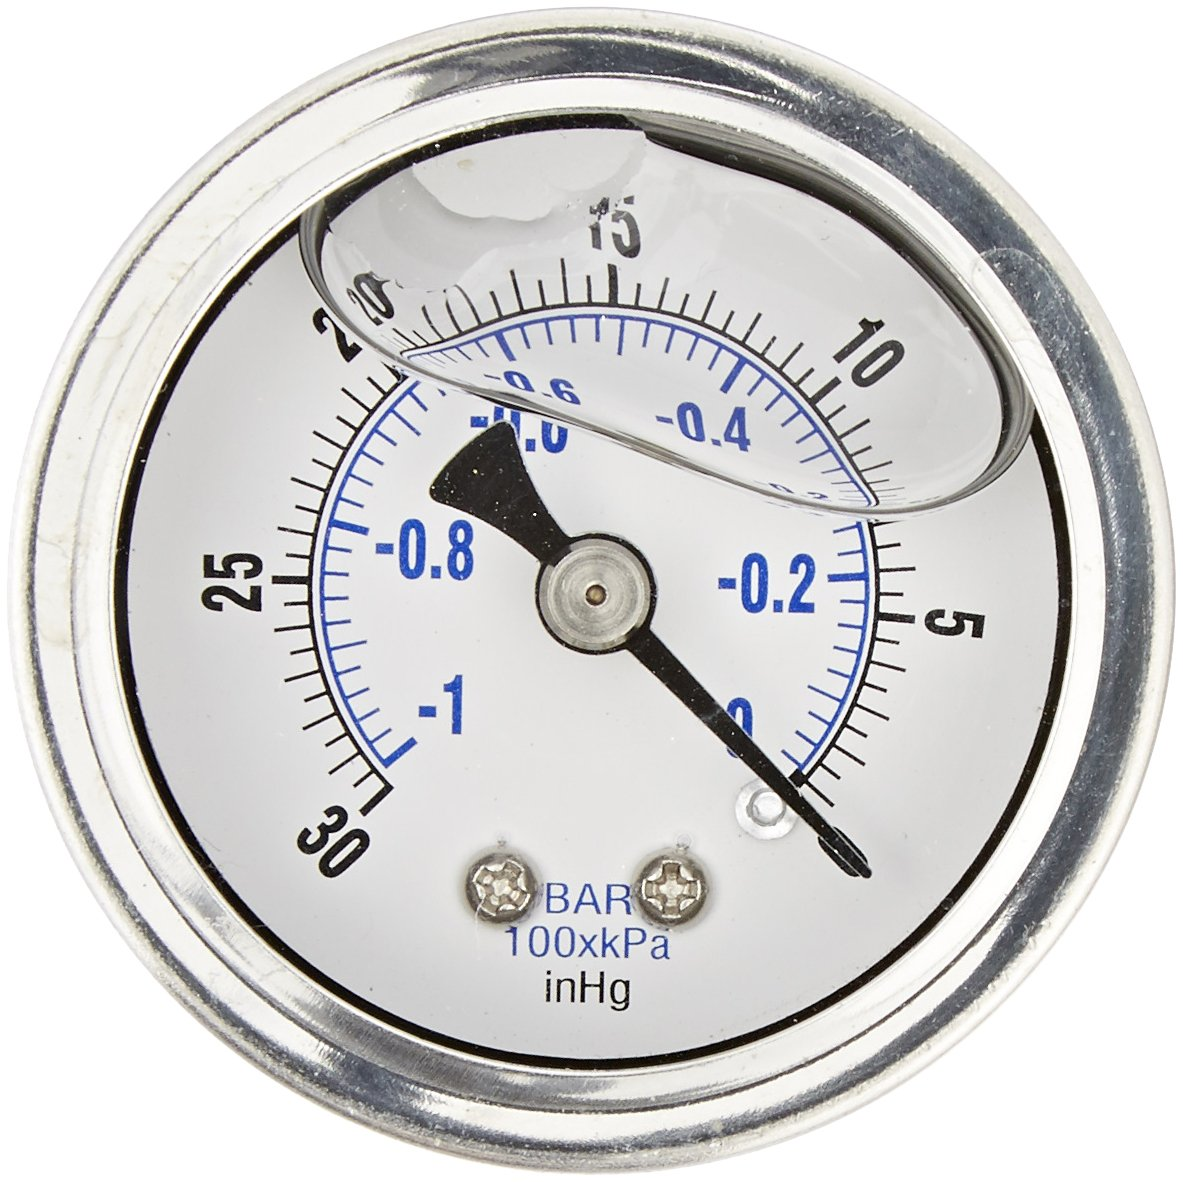 "PIC Gauge 202L-158A 1.5"" Dial, 30""/0 hg Vacuum psi Range, 1/8"" Male NPT Connection Size, Center Back Mount Glycerine Filled Pressure Gauge with a Stainless Steel Case, Brass Internals, Stainless Steel Bezel, and Polycarbonate Lens"